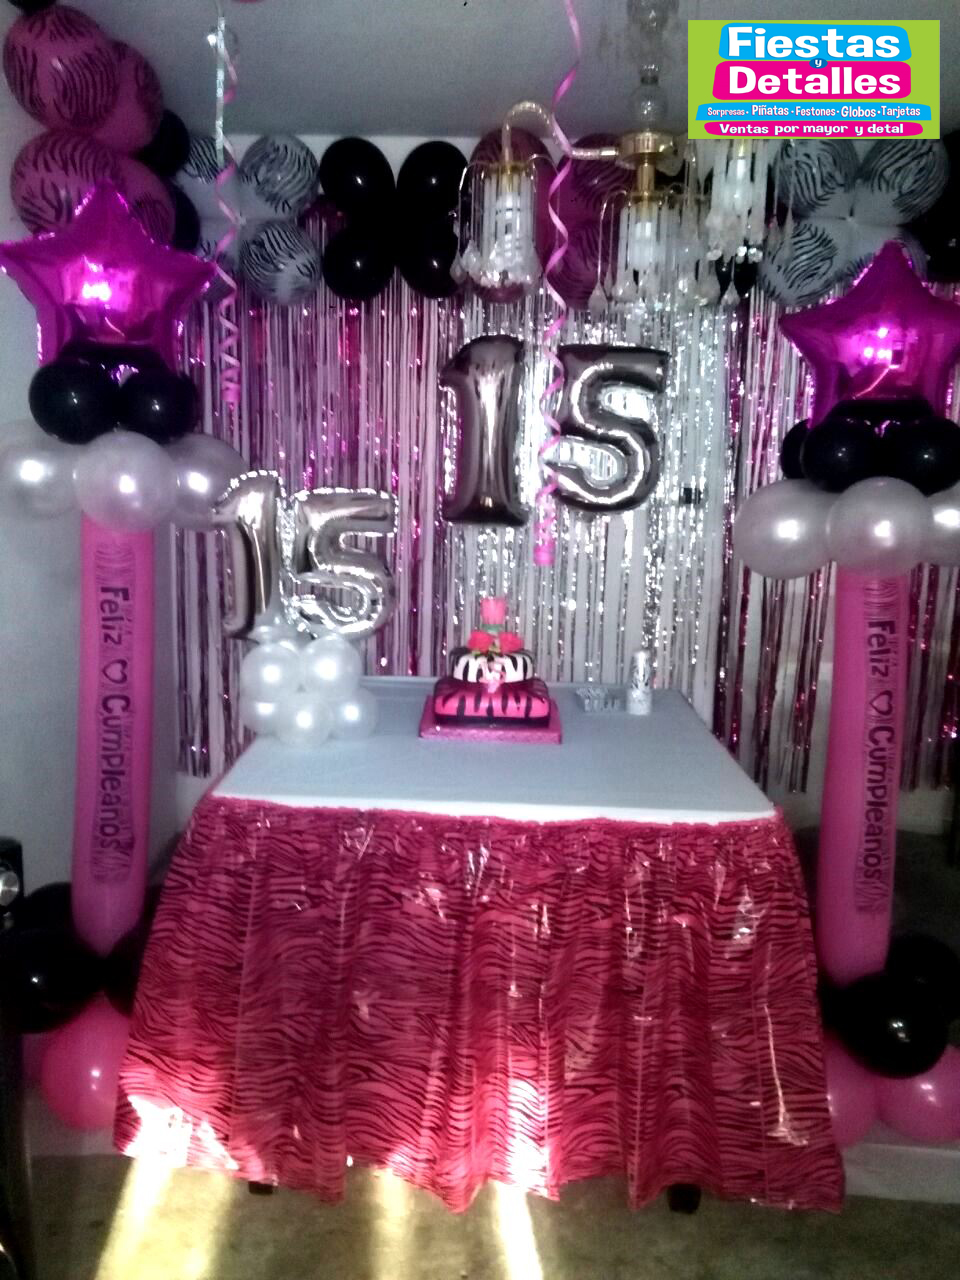 Fiestas y detalles for Decoraciones de sillas para 15 anos